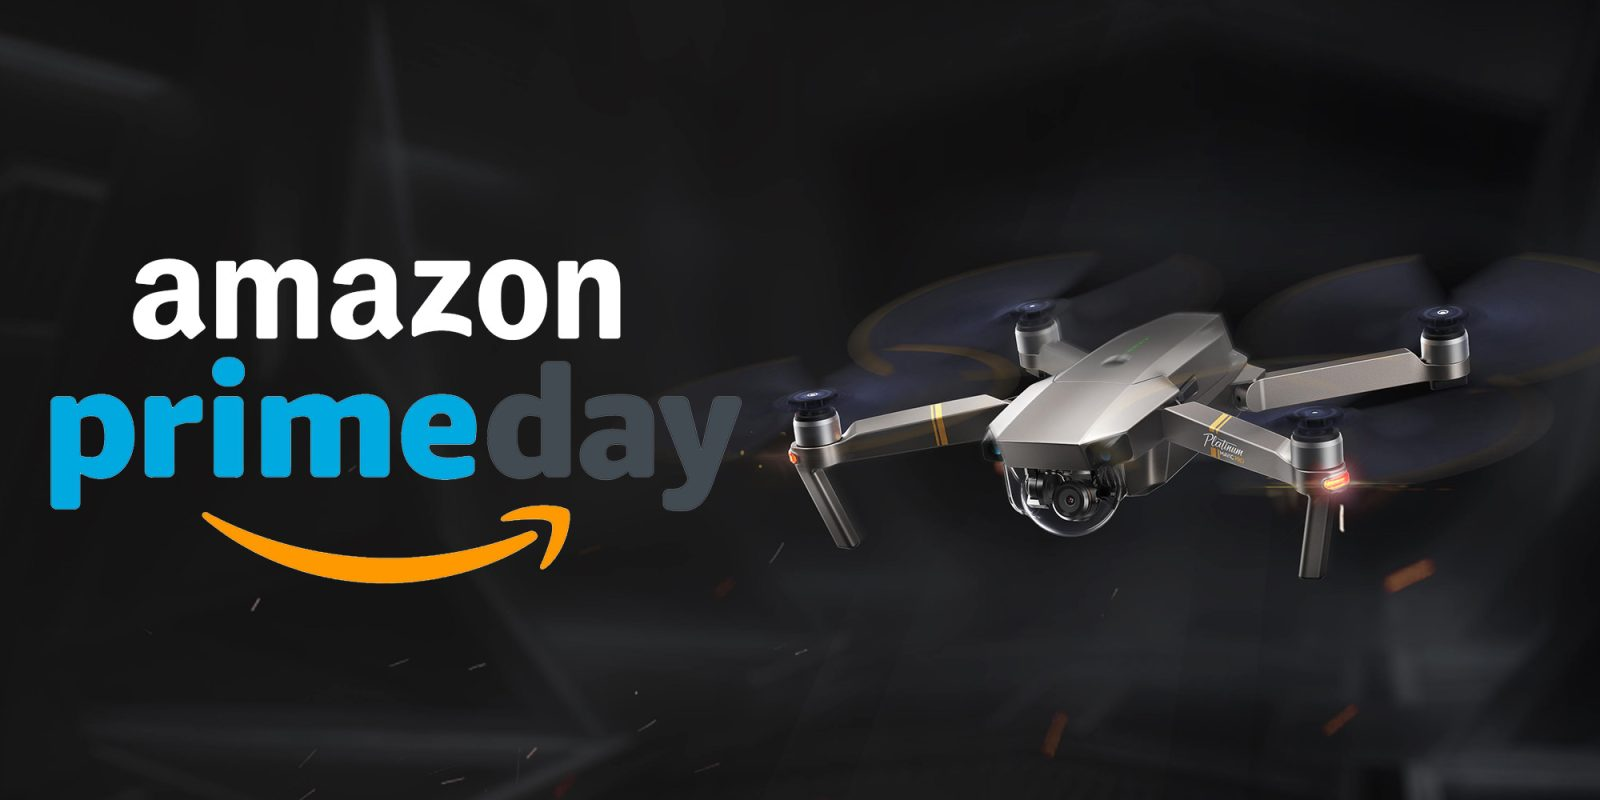 DJI Lowers Prices On Spark And Mavic Pro Drones During Amazon Prime Day July 16th